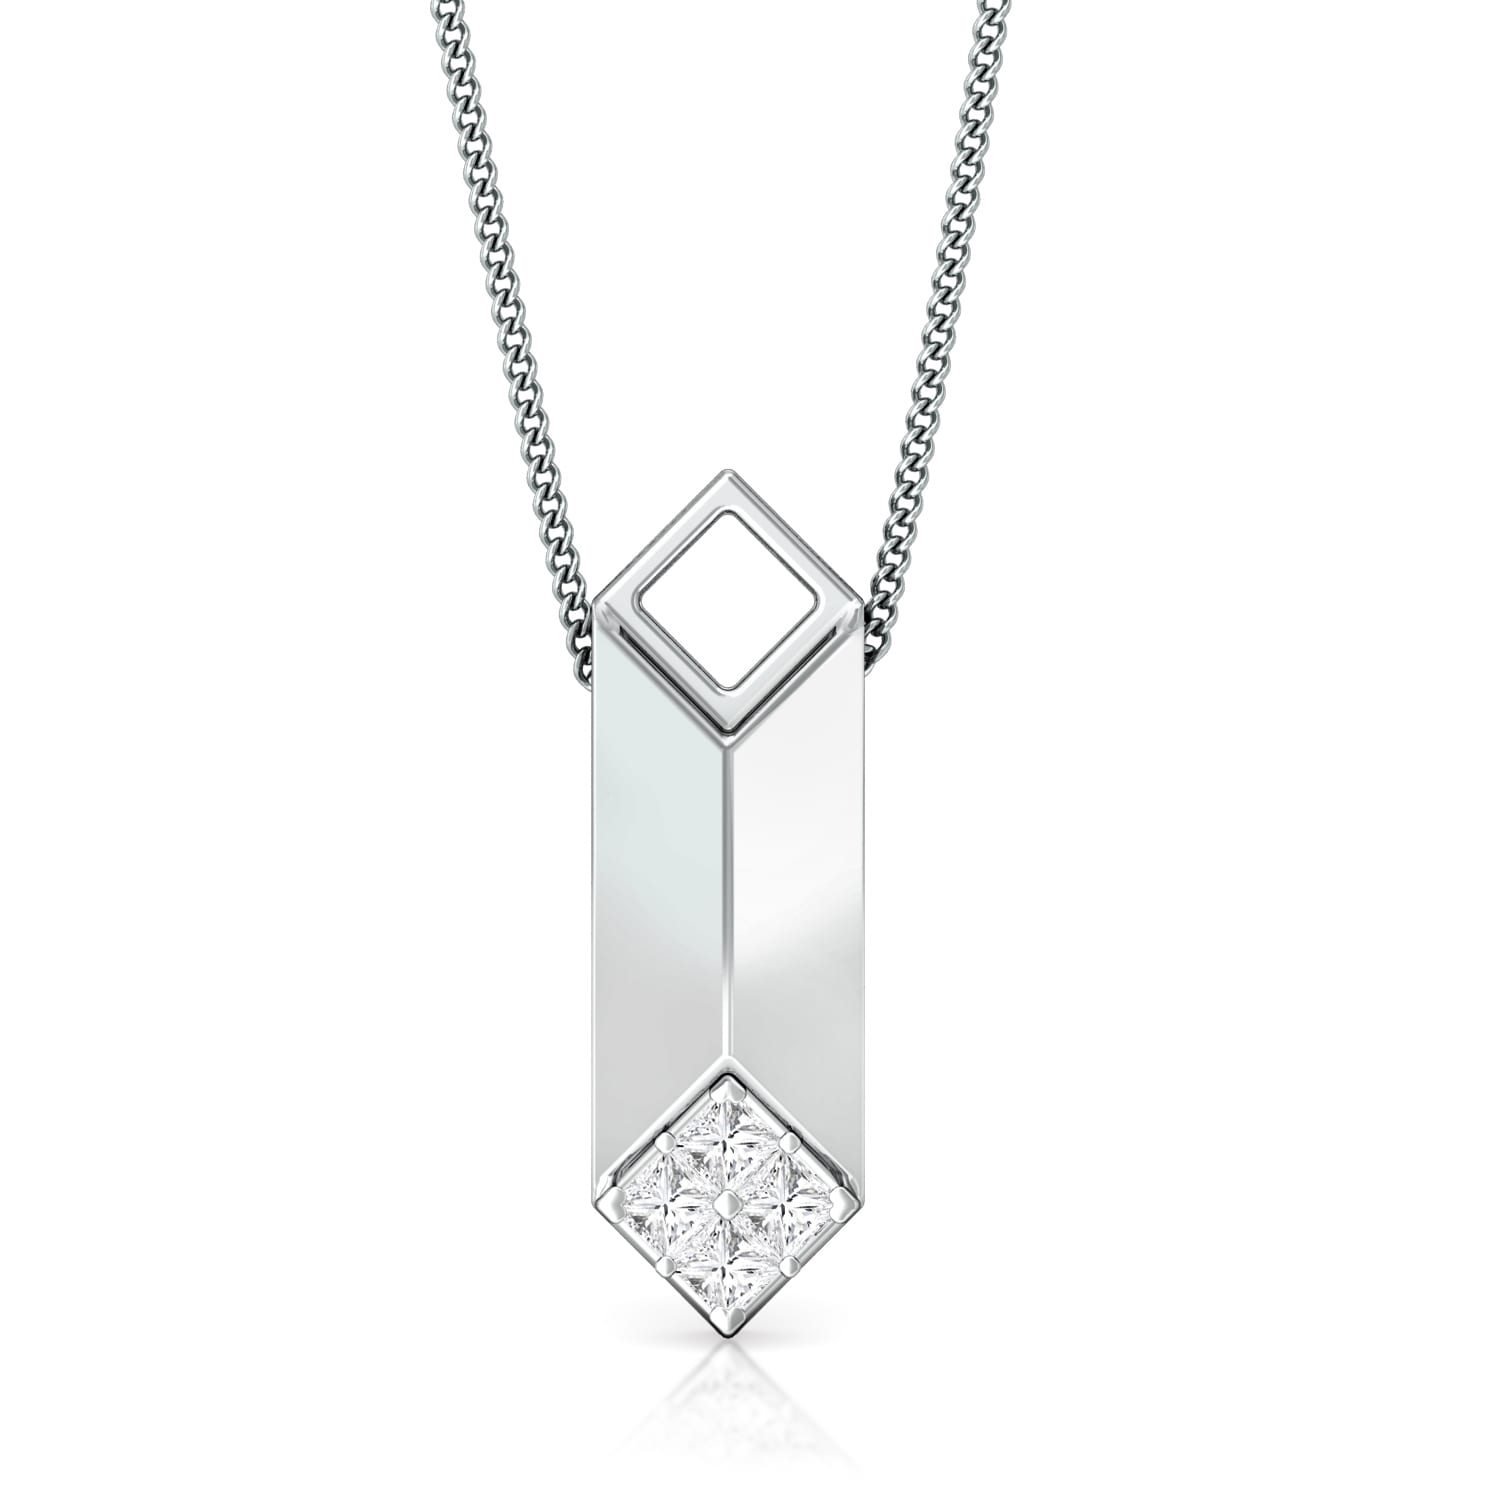 Constructive edge Diamond Pendants